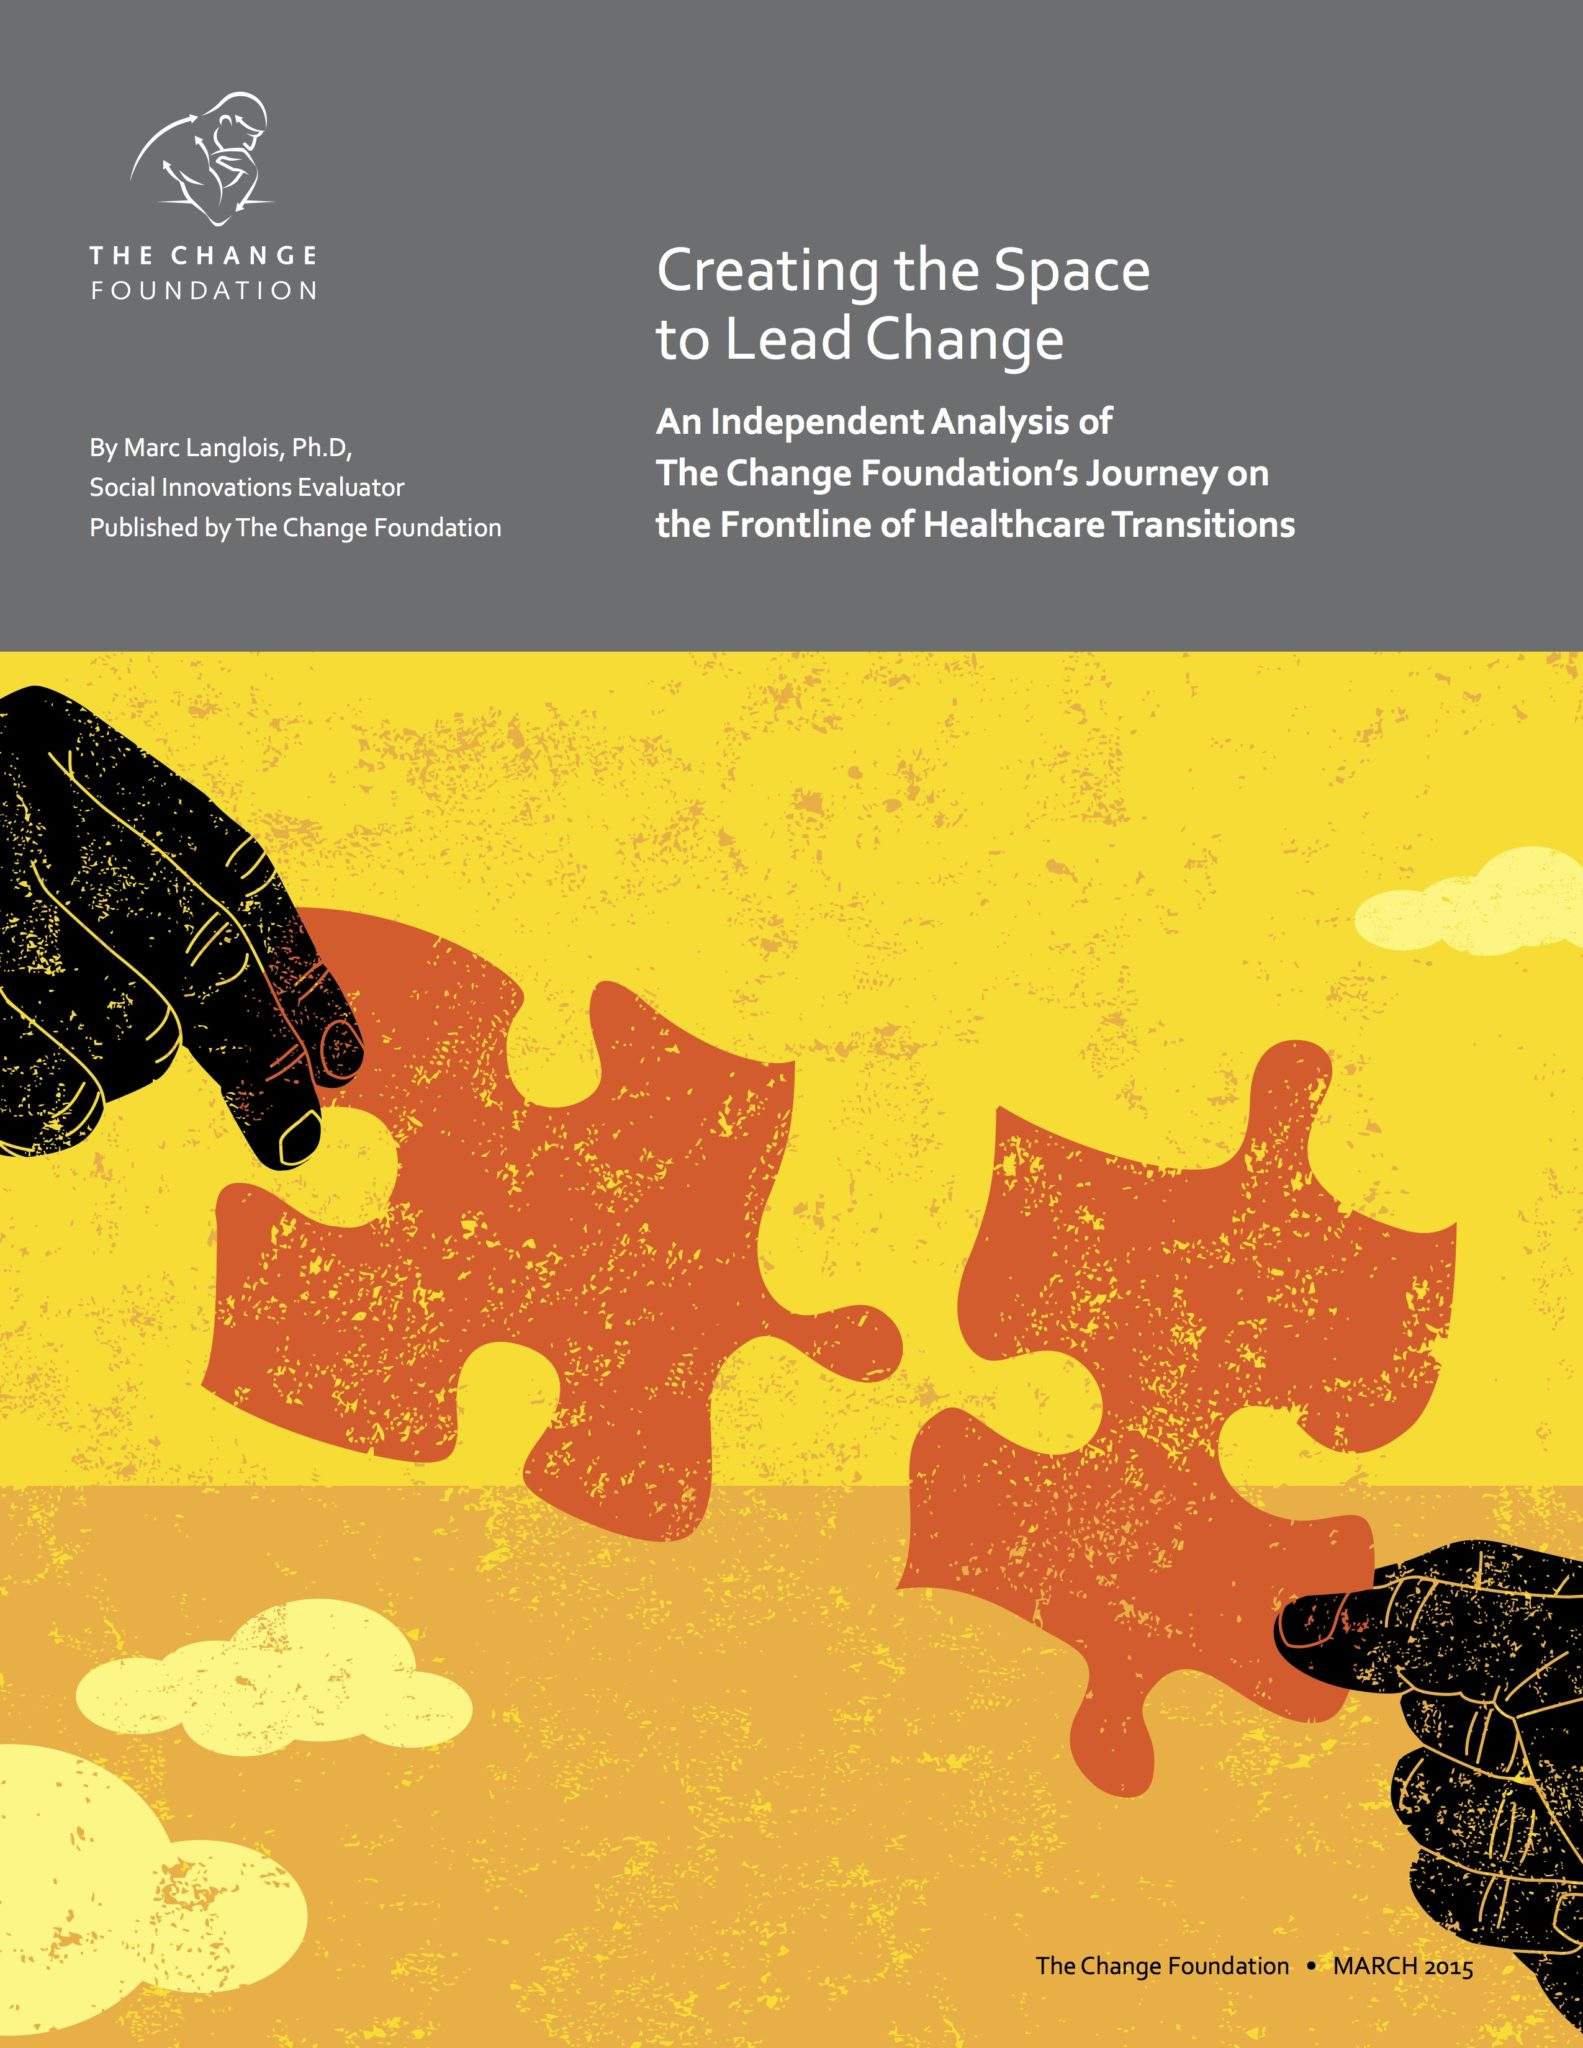 Creating The Space to Lead Change: An Independent Analysis of the Change Foundation's Journey on the Frontline of Healthcare Transitions